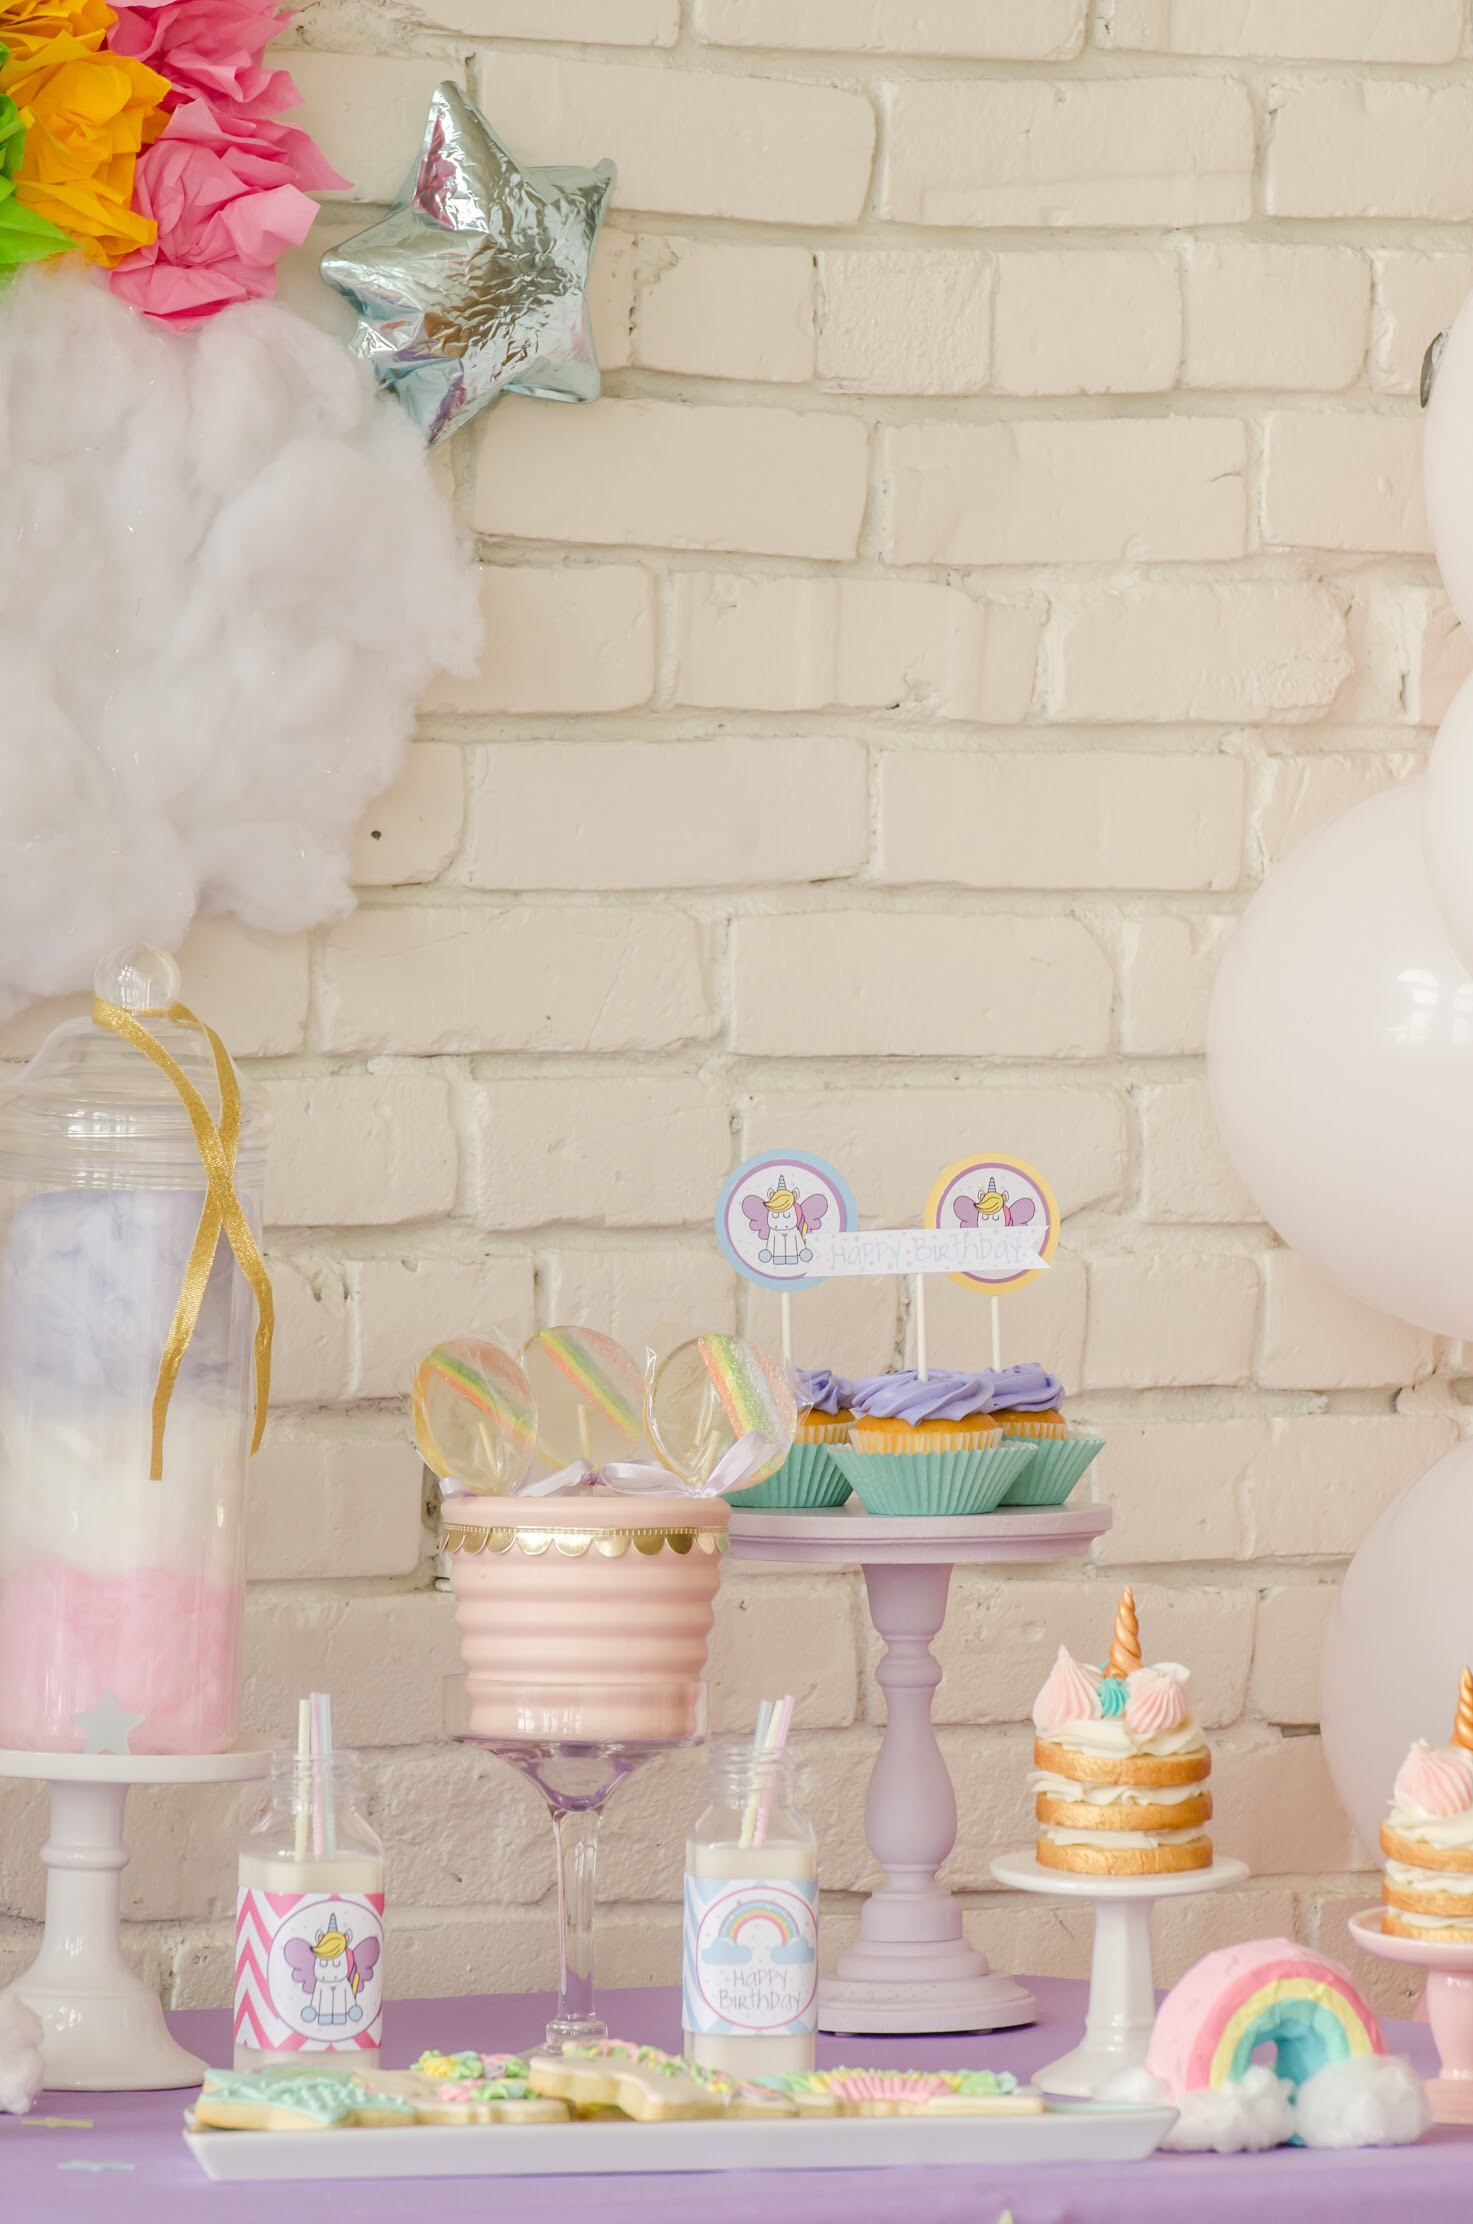 Unicorn themed birthday party dessert table from Mint Event Design www.minteventdesign.com #unicornparty #unicorncake #birthdayparty #birthdaypartyideas #birthdaydesserts #birthdaycake #desserttable